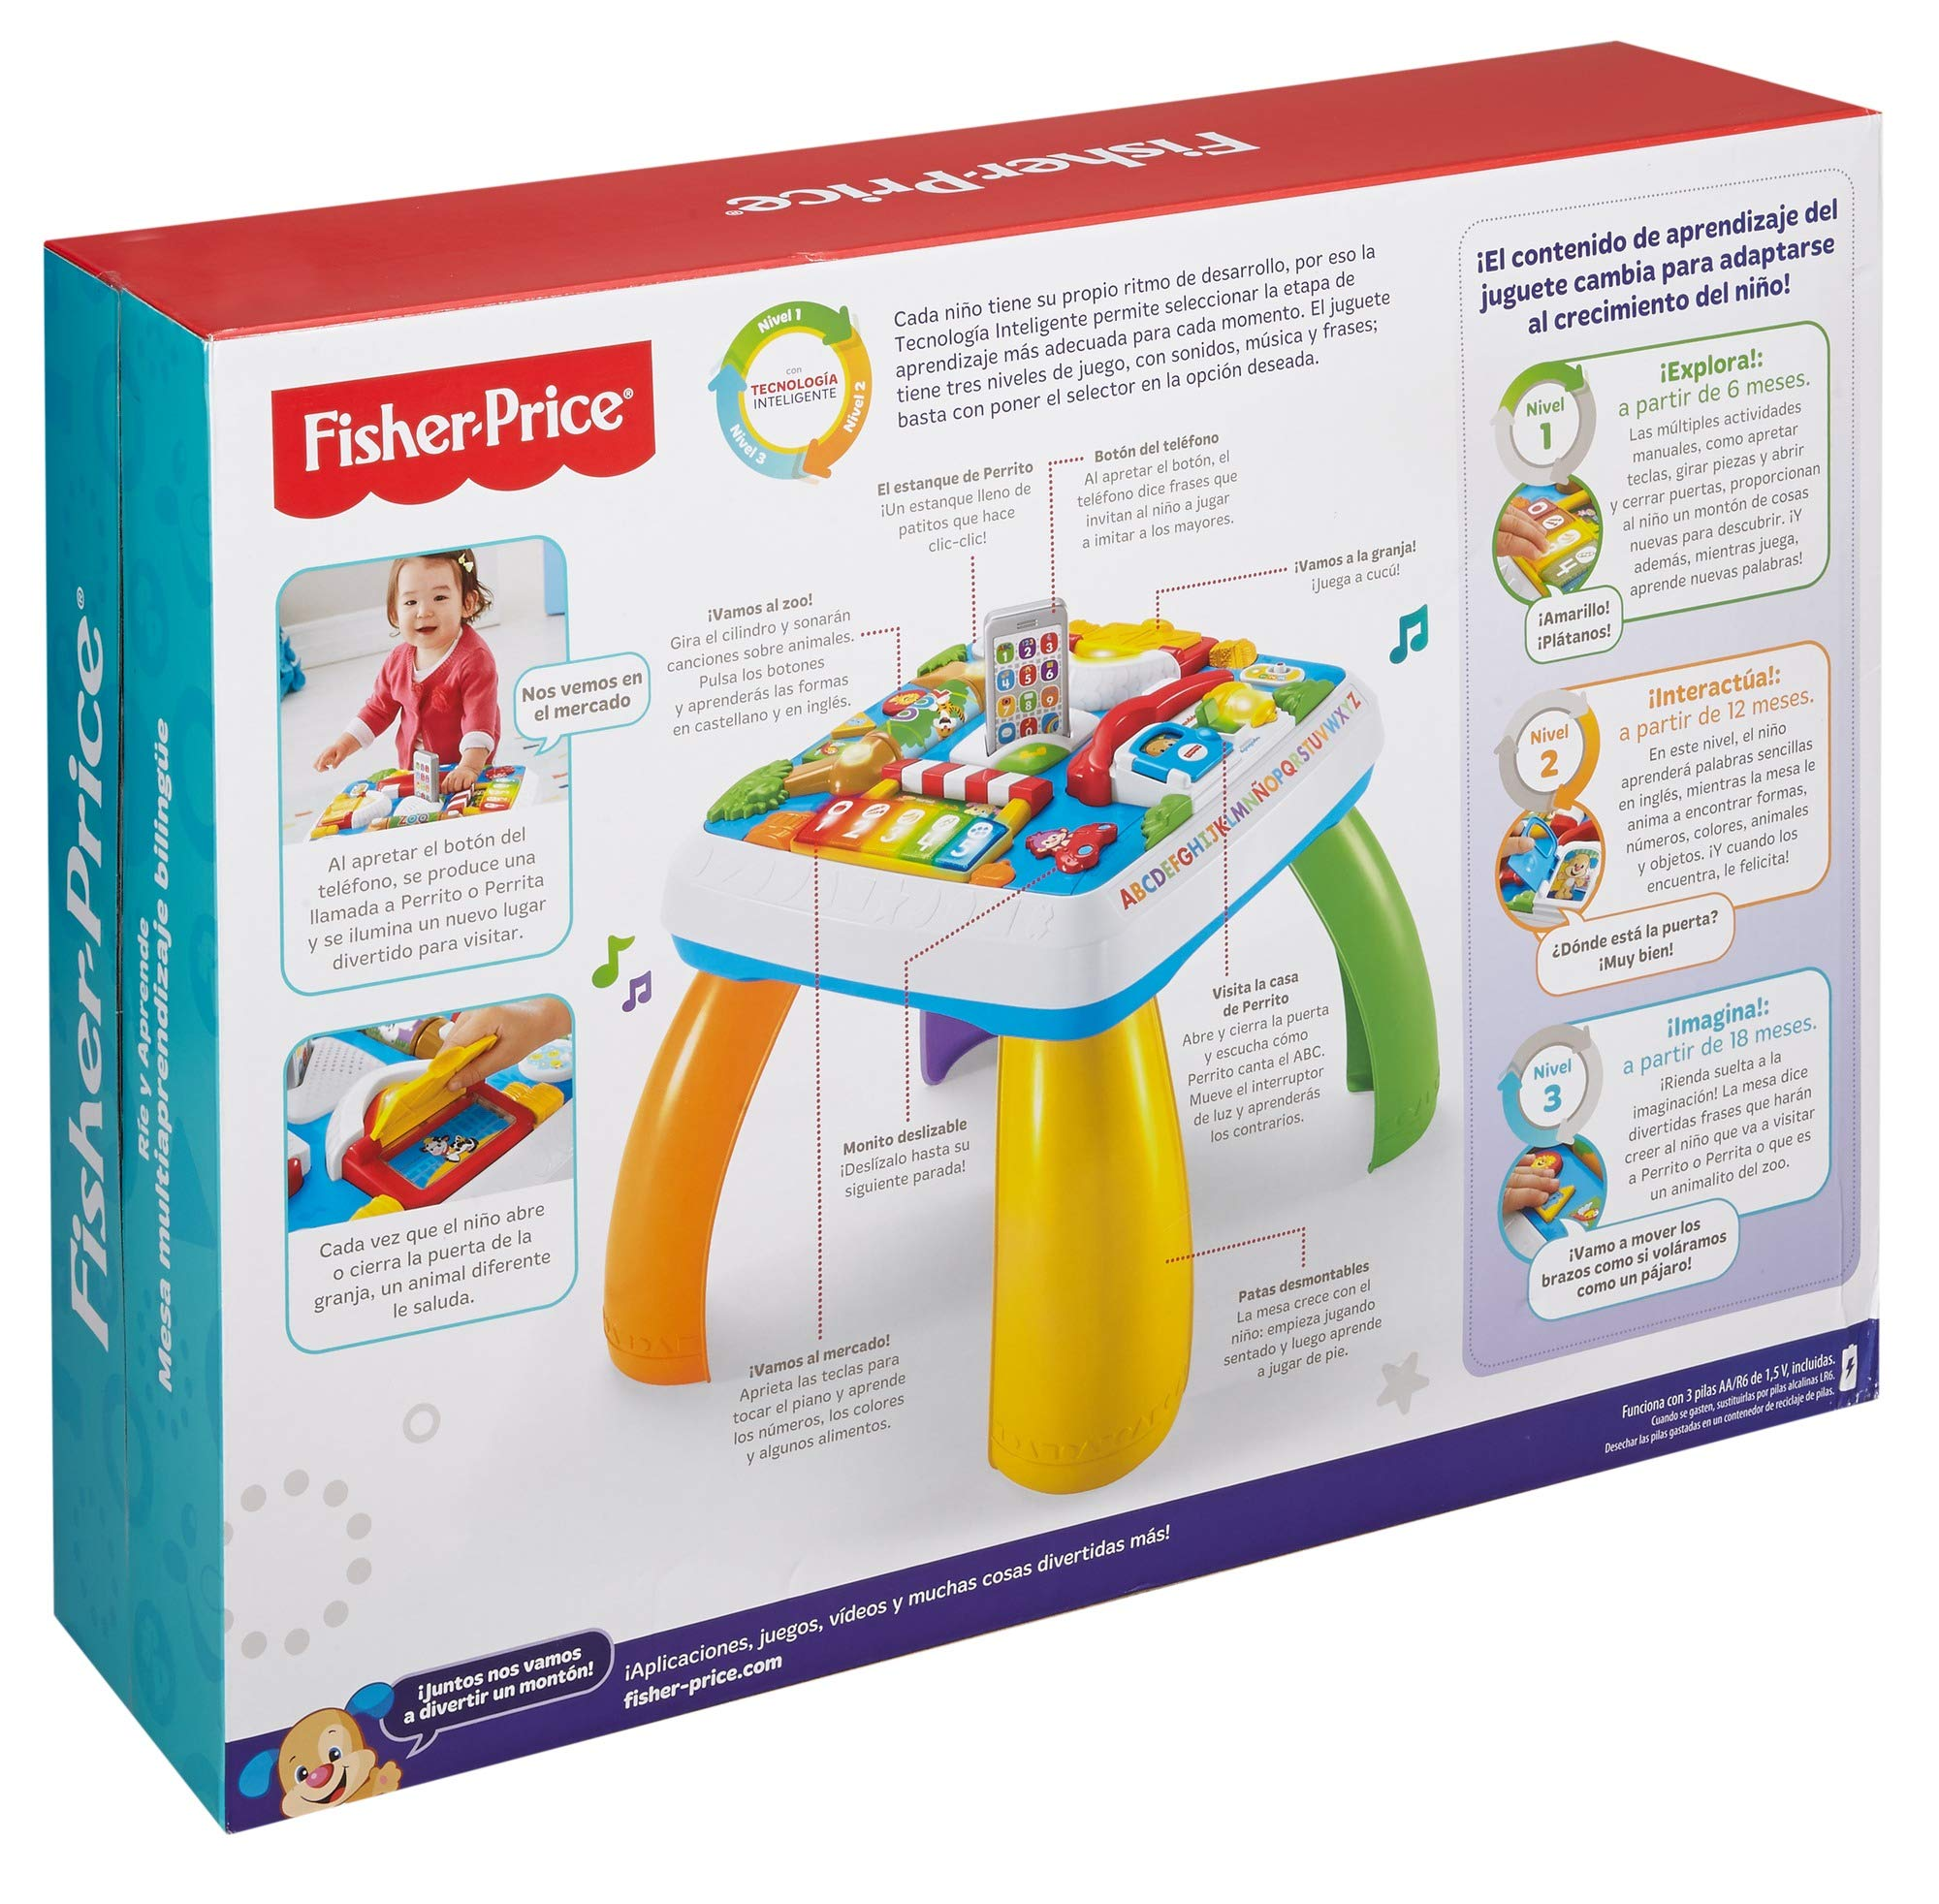 Amazon.es: Fisher-Price